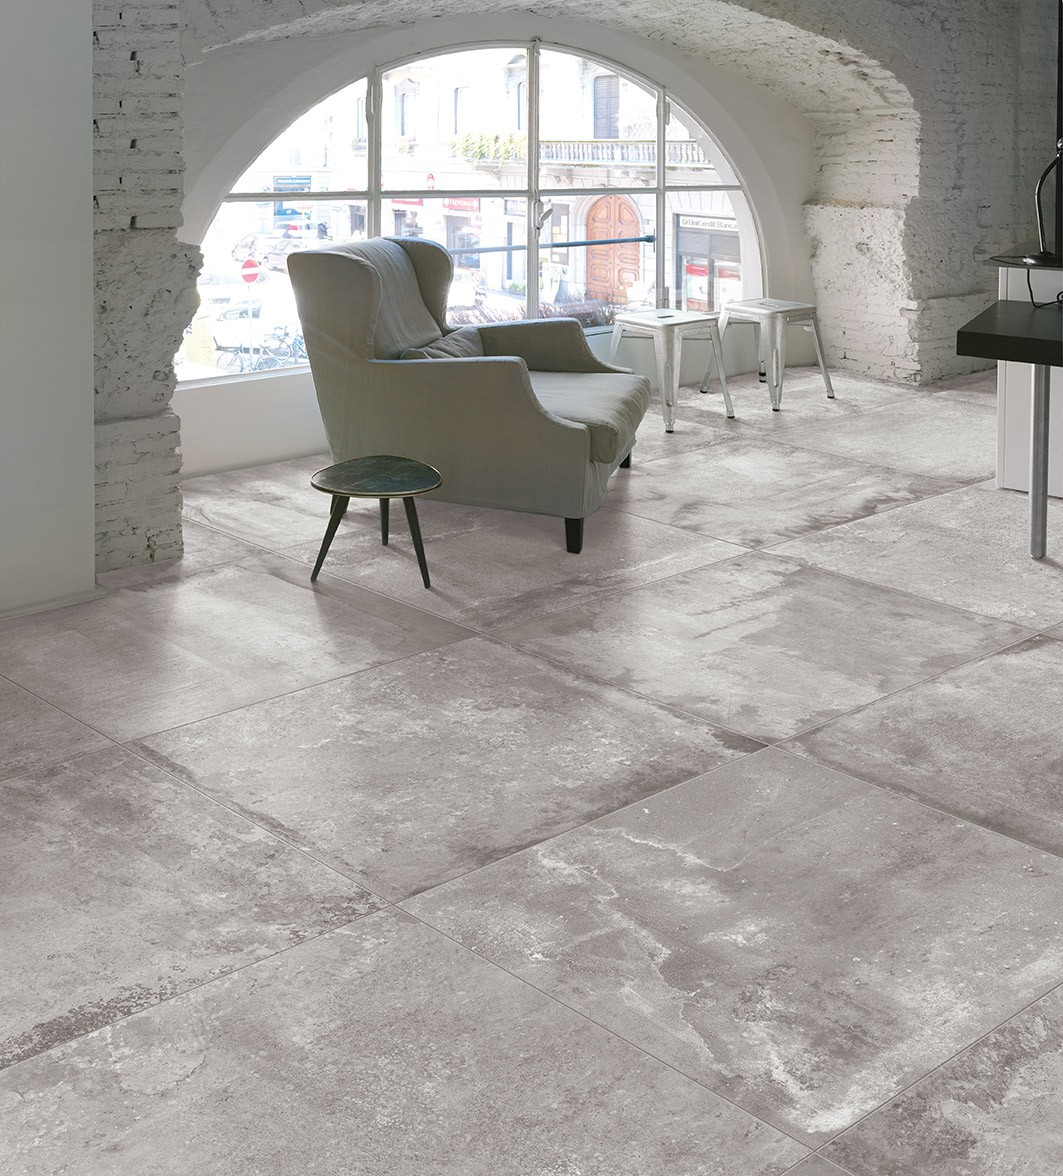 Carrelage nuanc aspect us style loft equation porto venere for Carrelage vieilli